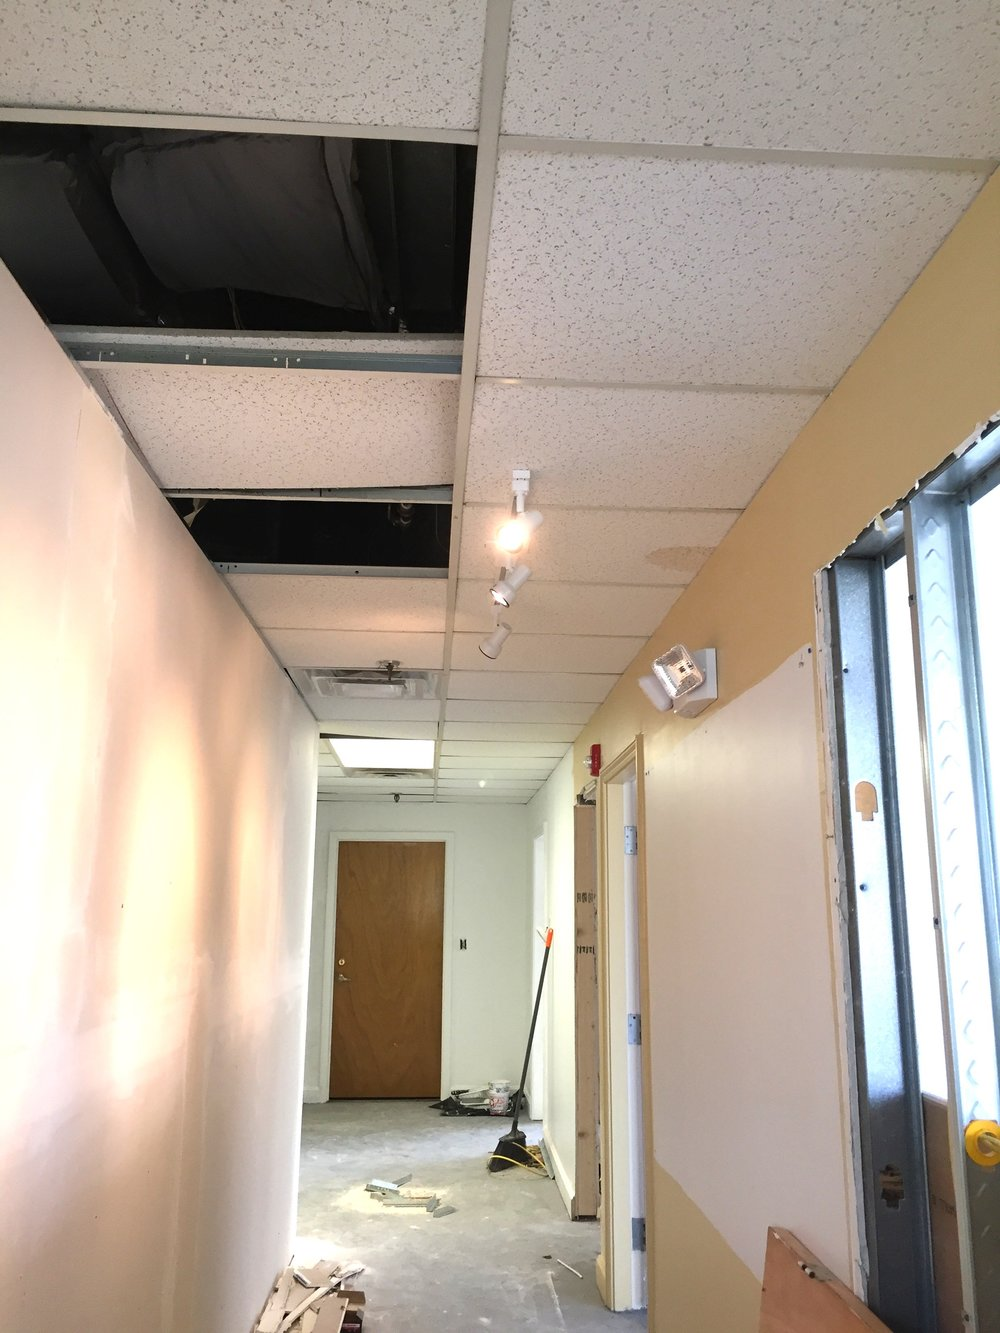 The hallway, mid-construction